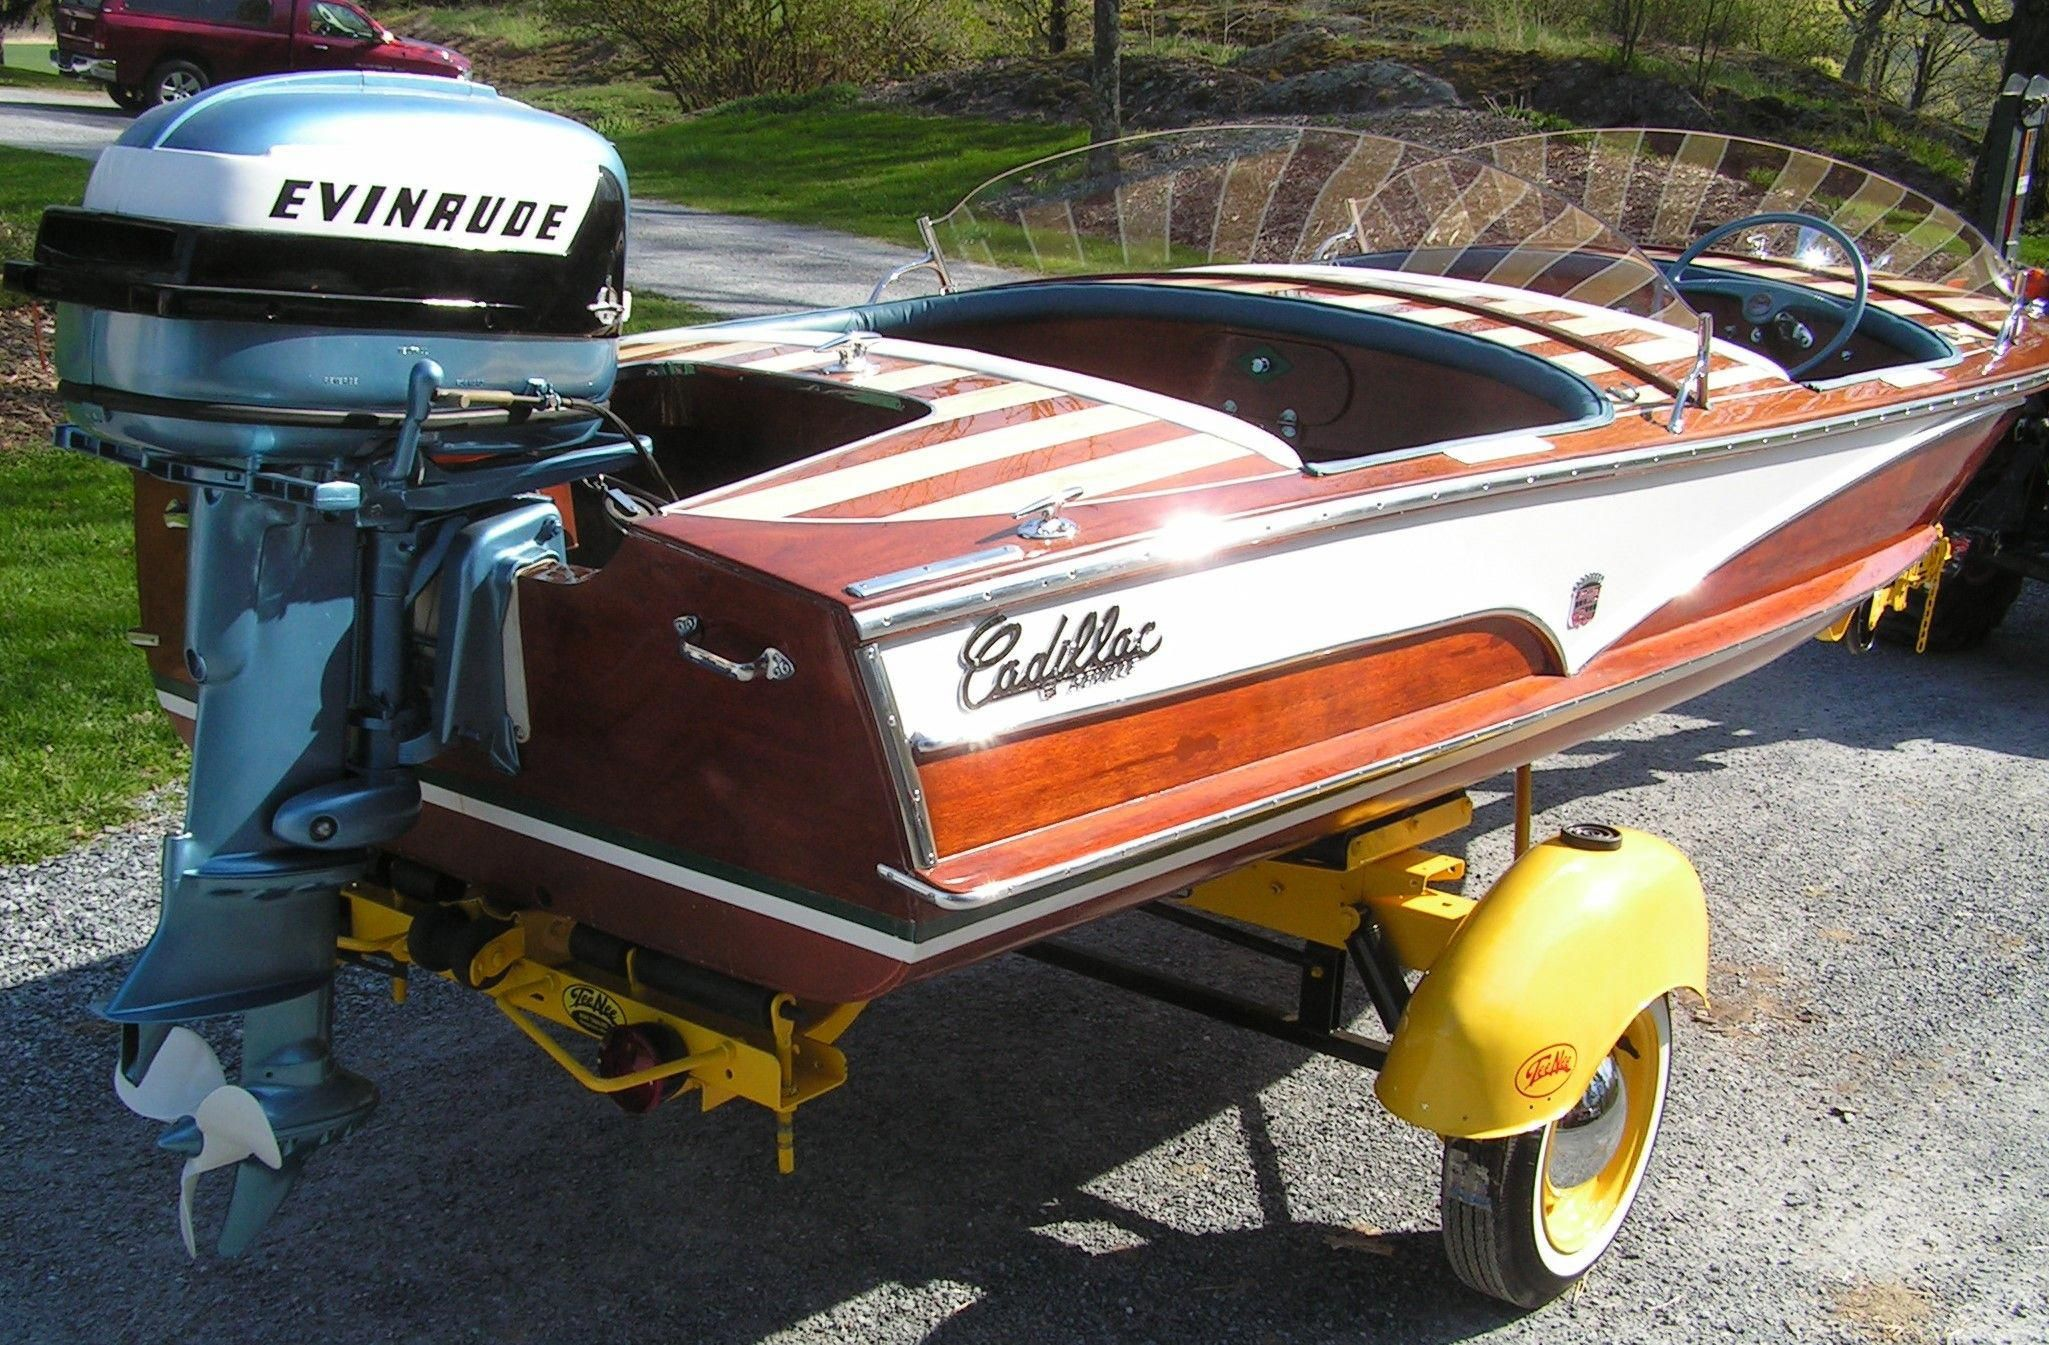 19+ Chris craft wooden boats history ideas in 2021